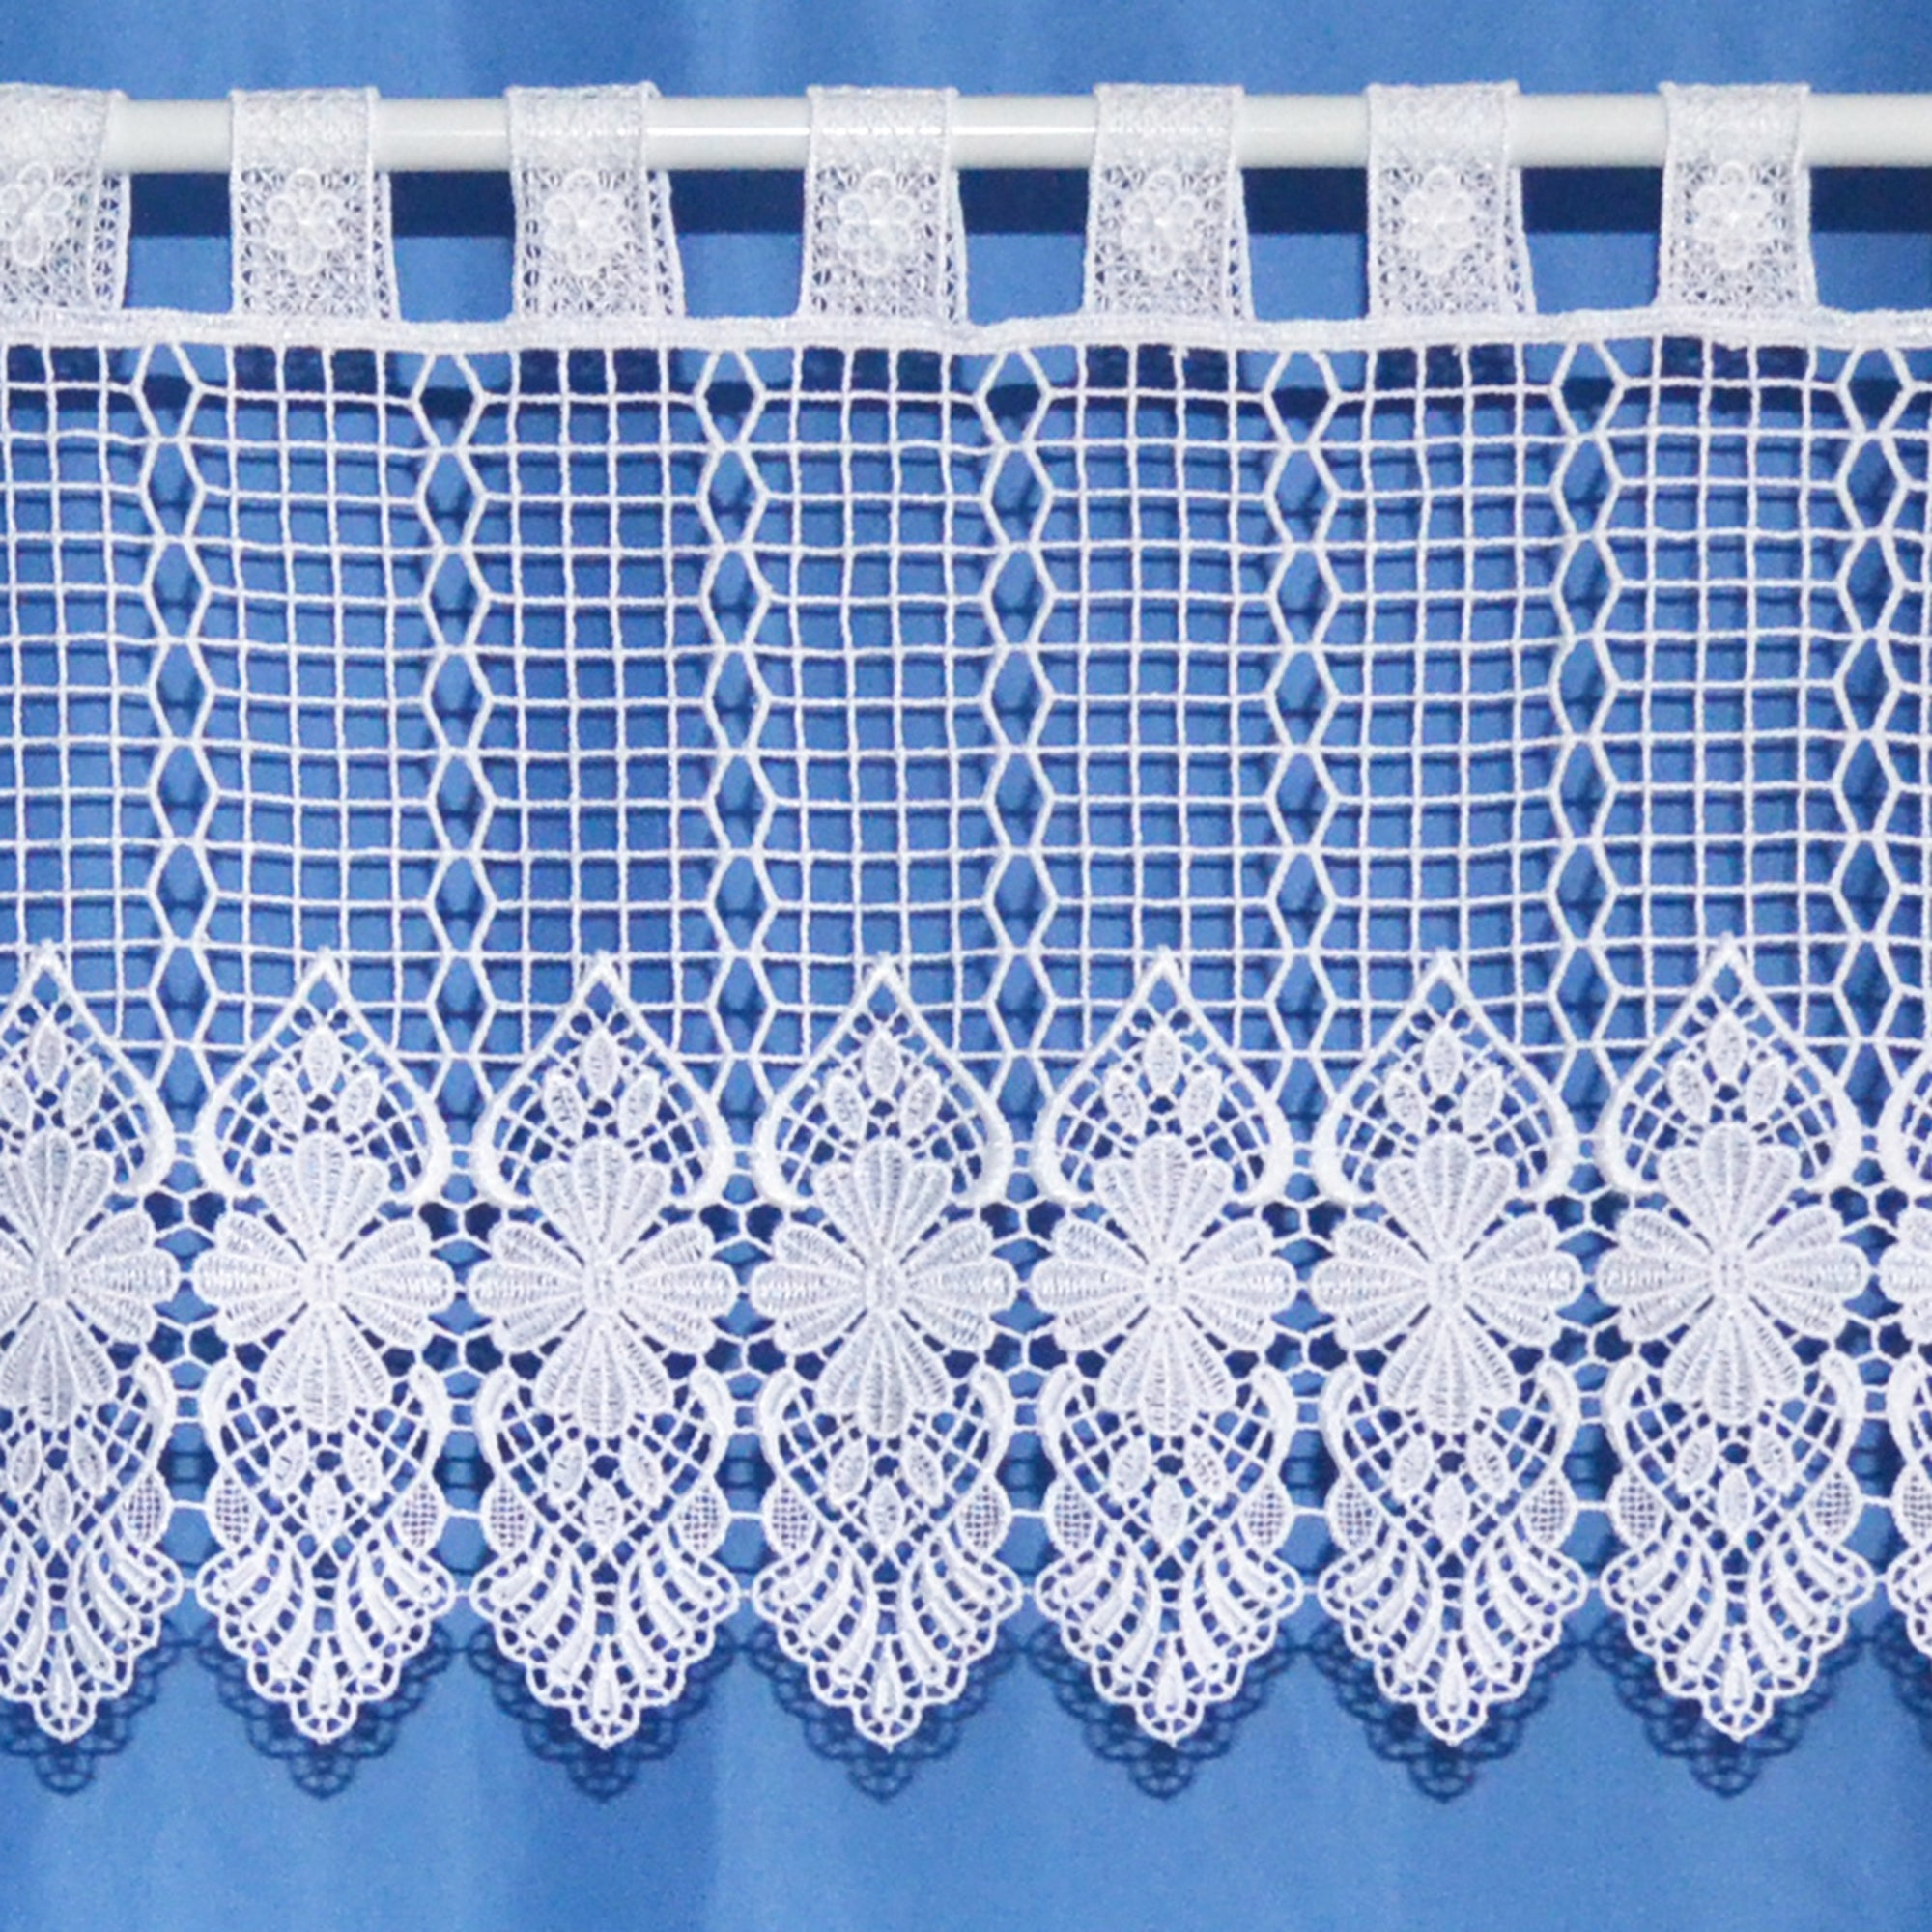 Macrame Cafe Lace Net Fabric